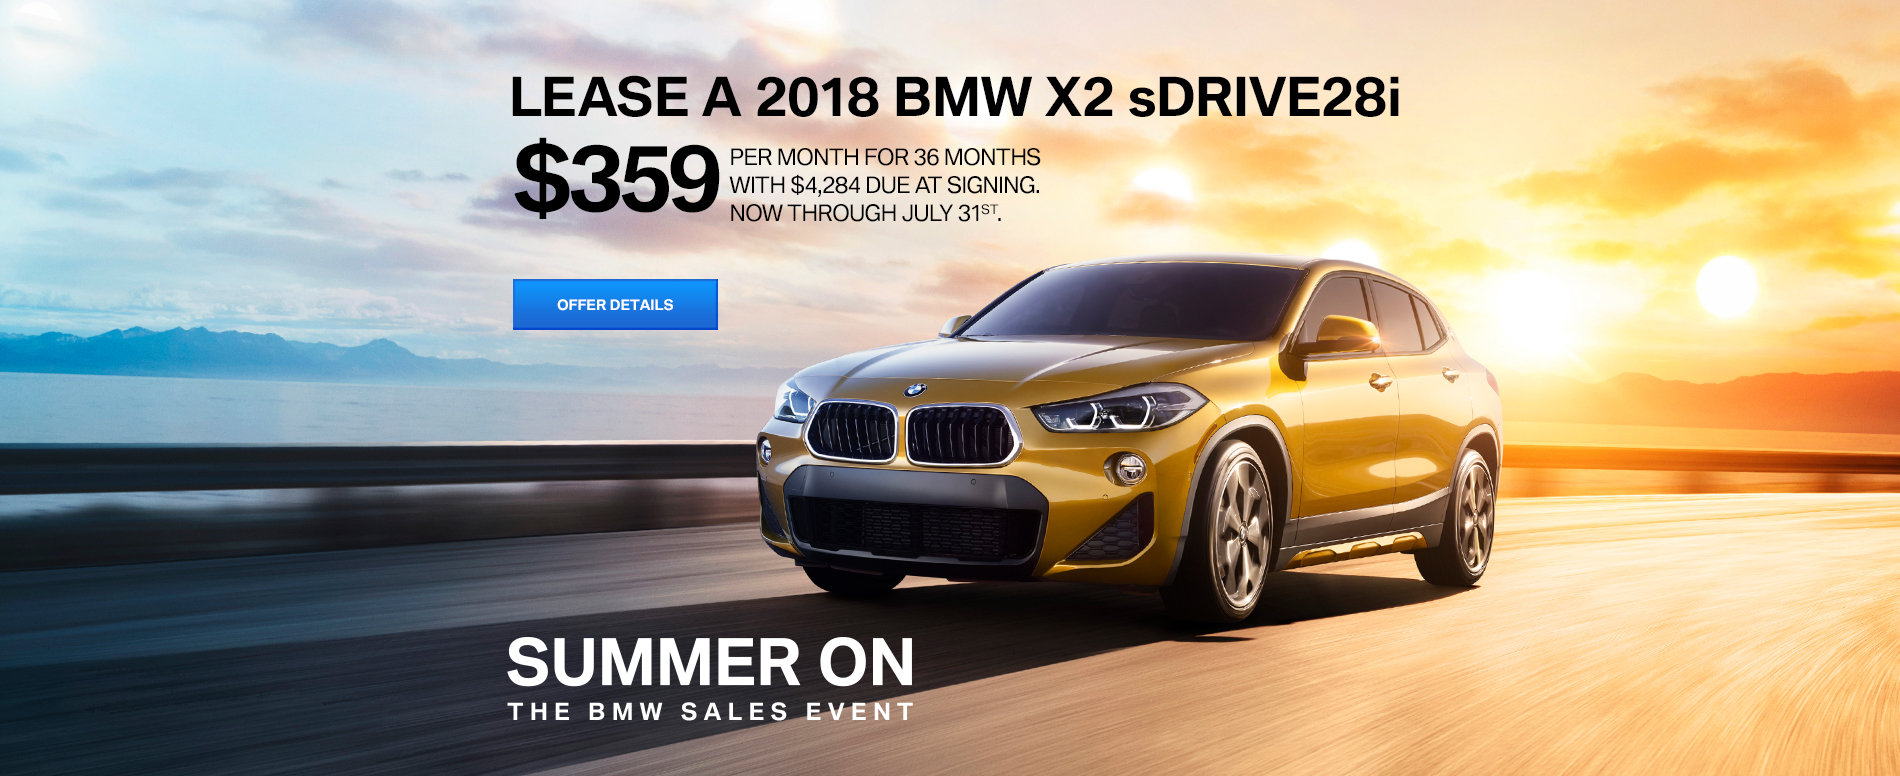 LEASE A 2018 X2 sDRIVE28i FOR $359 /MO FOR 36 MONTHS WITH $4,284